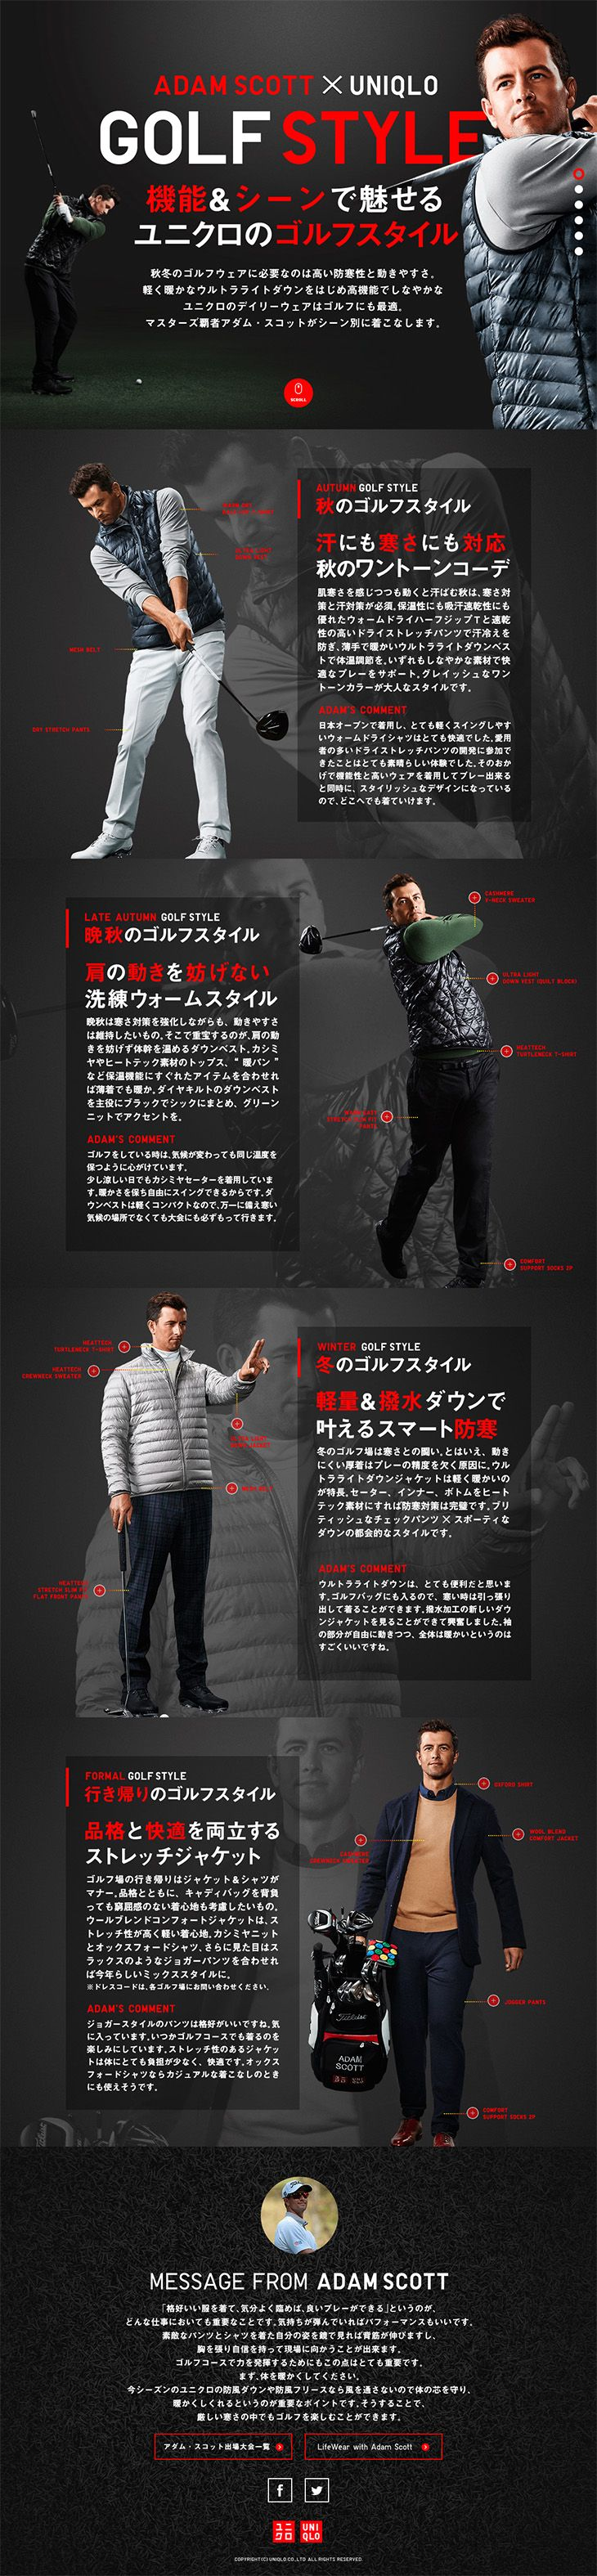 ADAM SCOTT×UNIQLO GOLF LIFE …